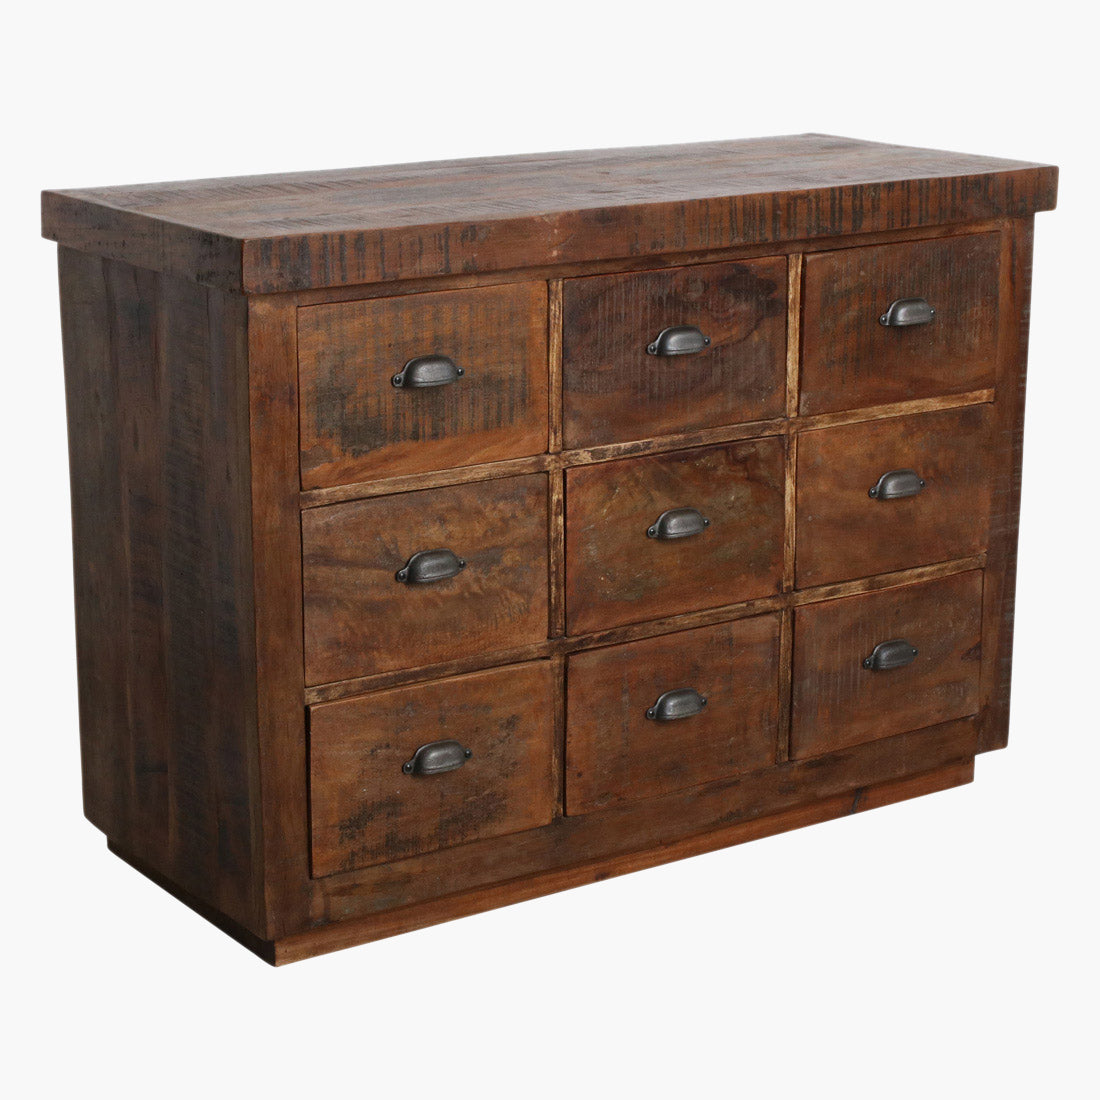 Factory 9-drawer sideboard